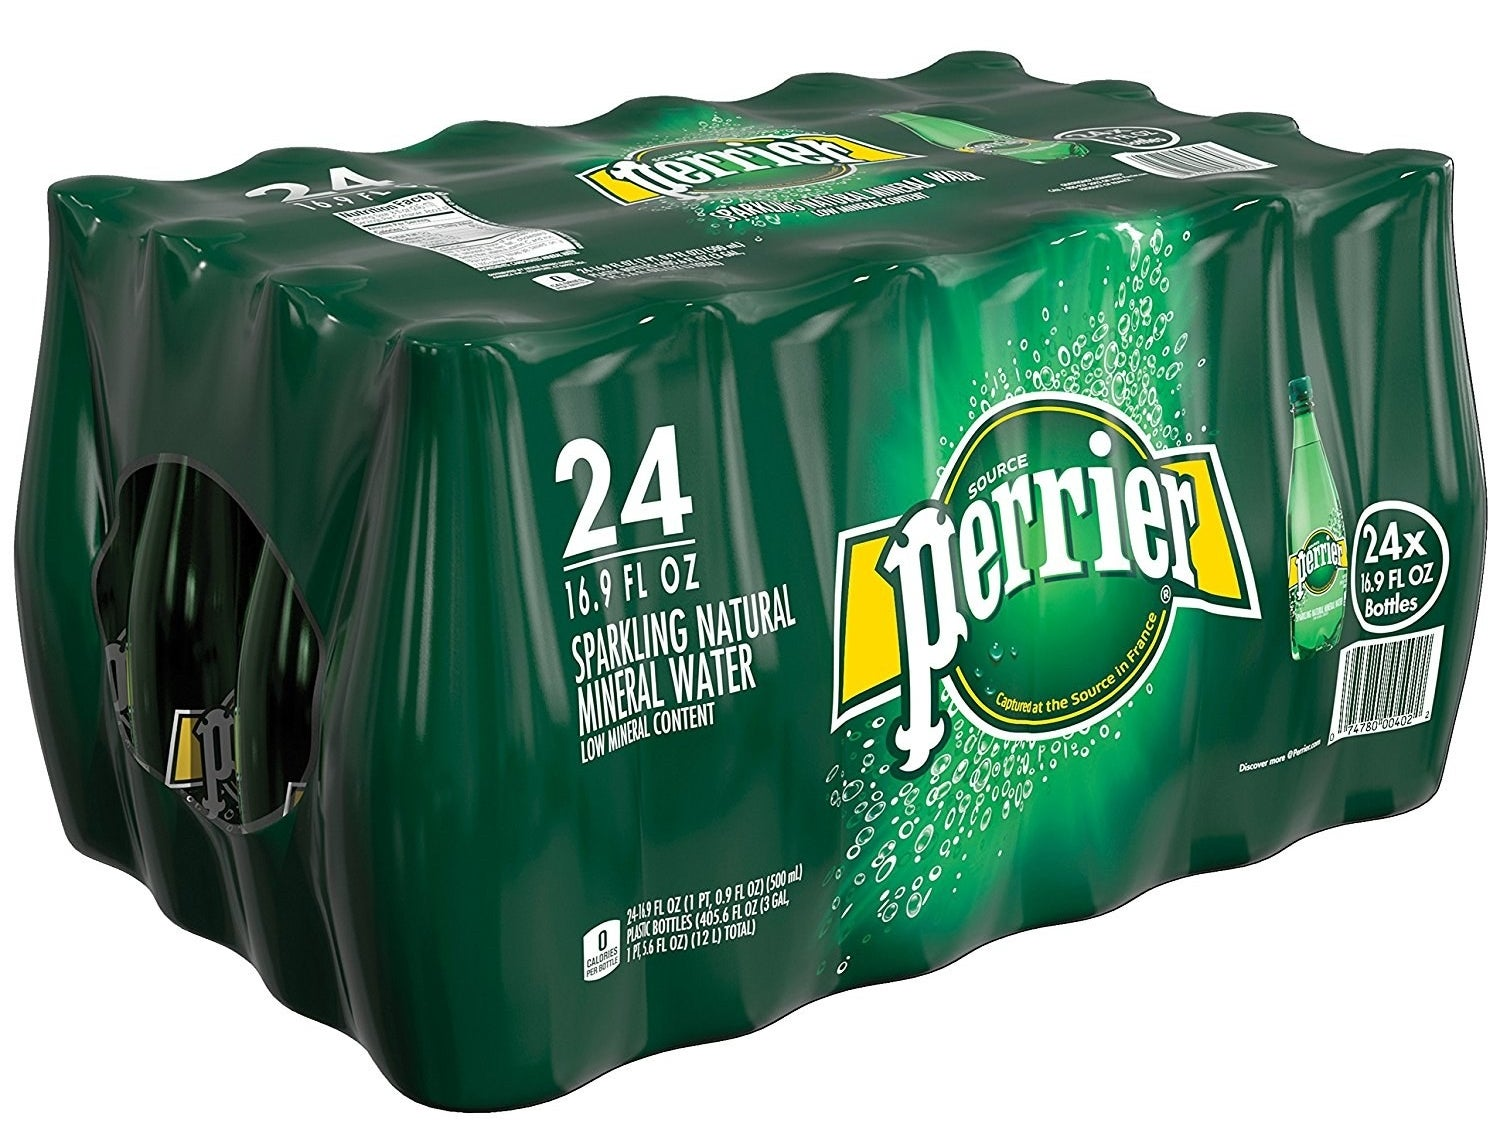 Enter promo code SPARKLING20 at checkout.Get a 24-pack for $15.99 ($4 off the list price).